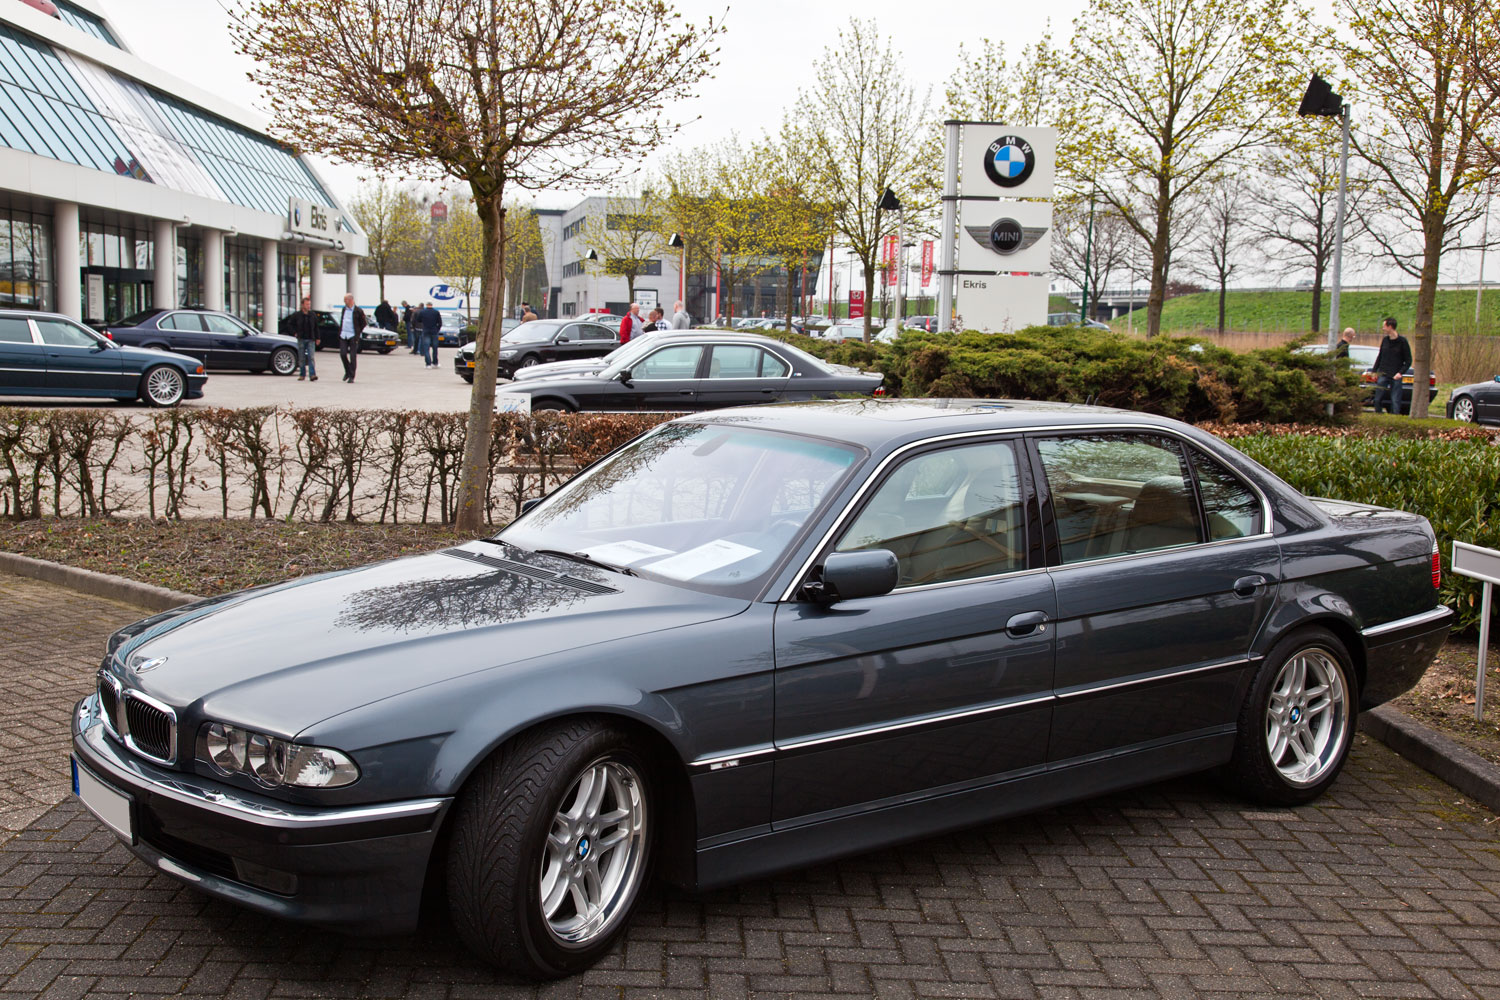 Anthrazit Metallic Bmw Foto Bmw 750il E38 Baujahr 12 1999 In Anthrazit Metallic